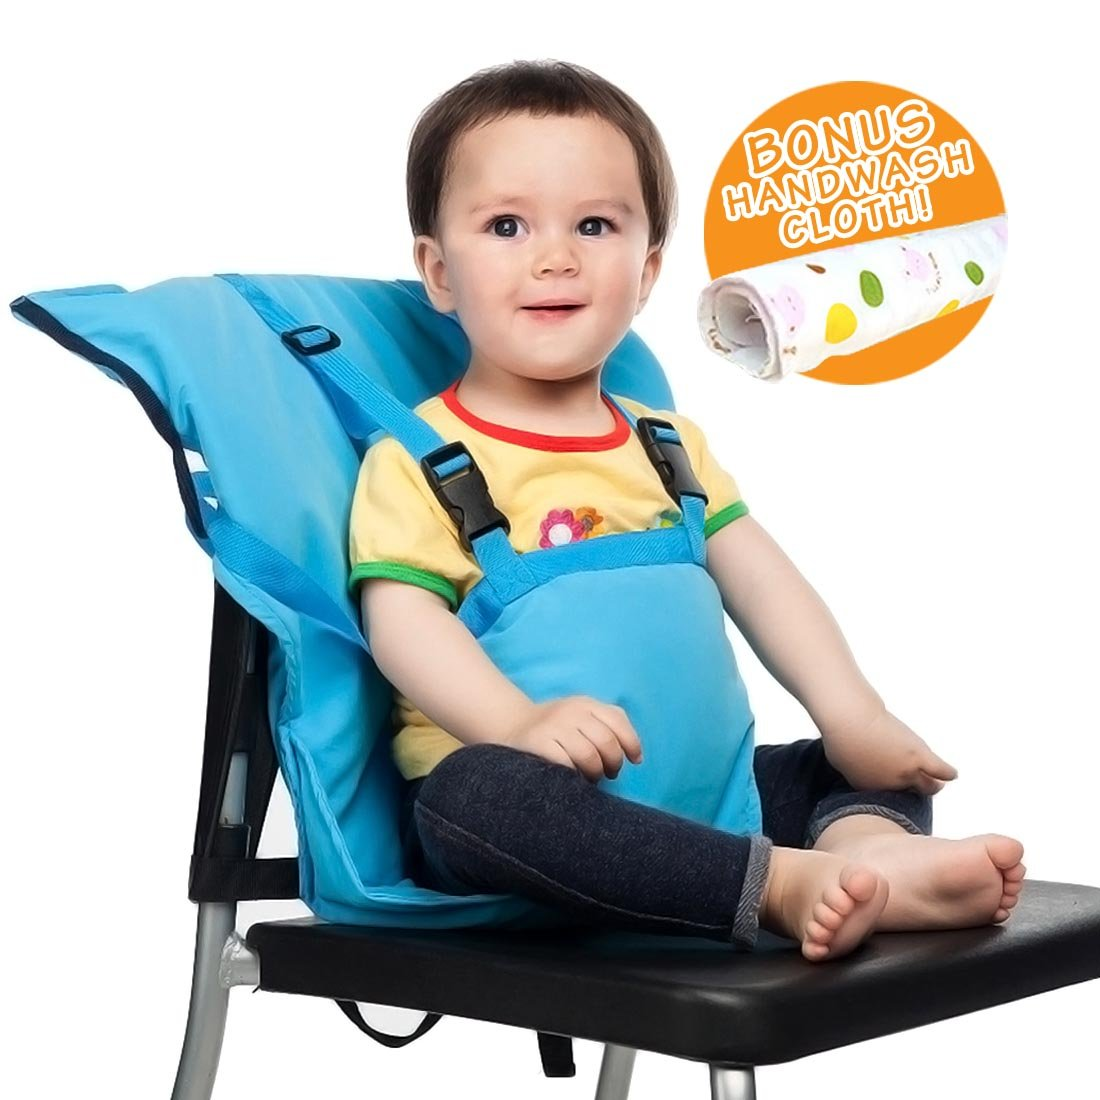 baby chair carrier universal dining room covers buy feeding high harness colorful portable travel booster safety seat cover sack cushion bag kid toddler size 44 lbs capacity soft cotton